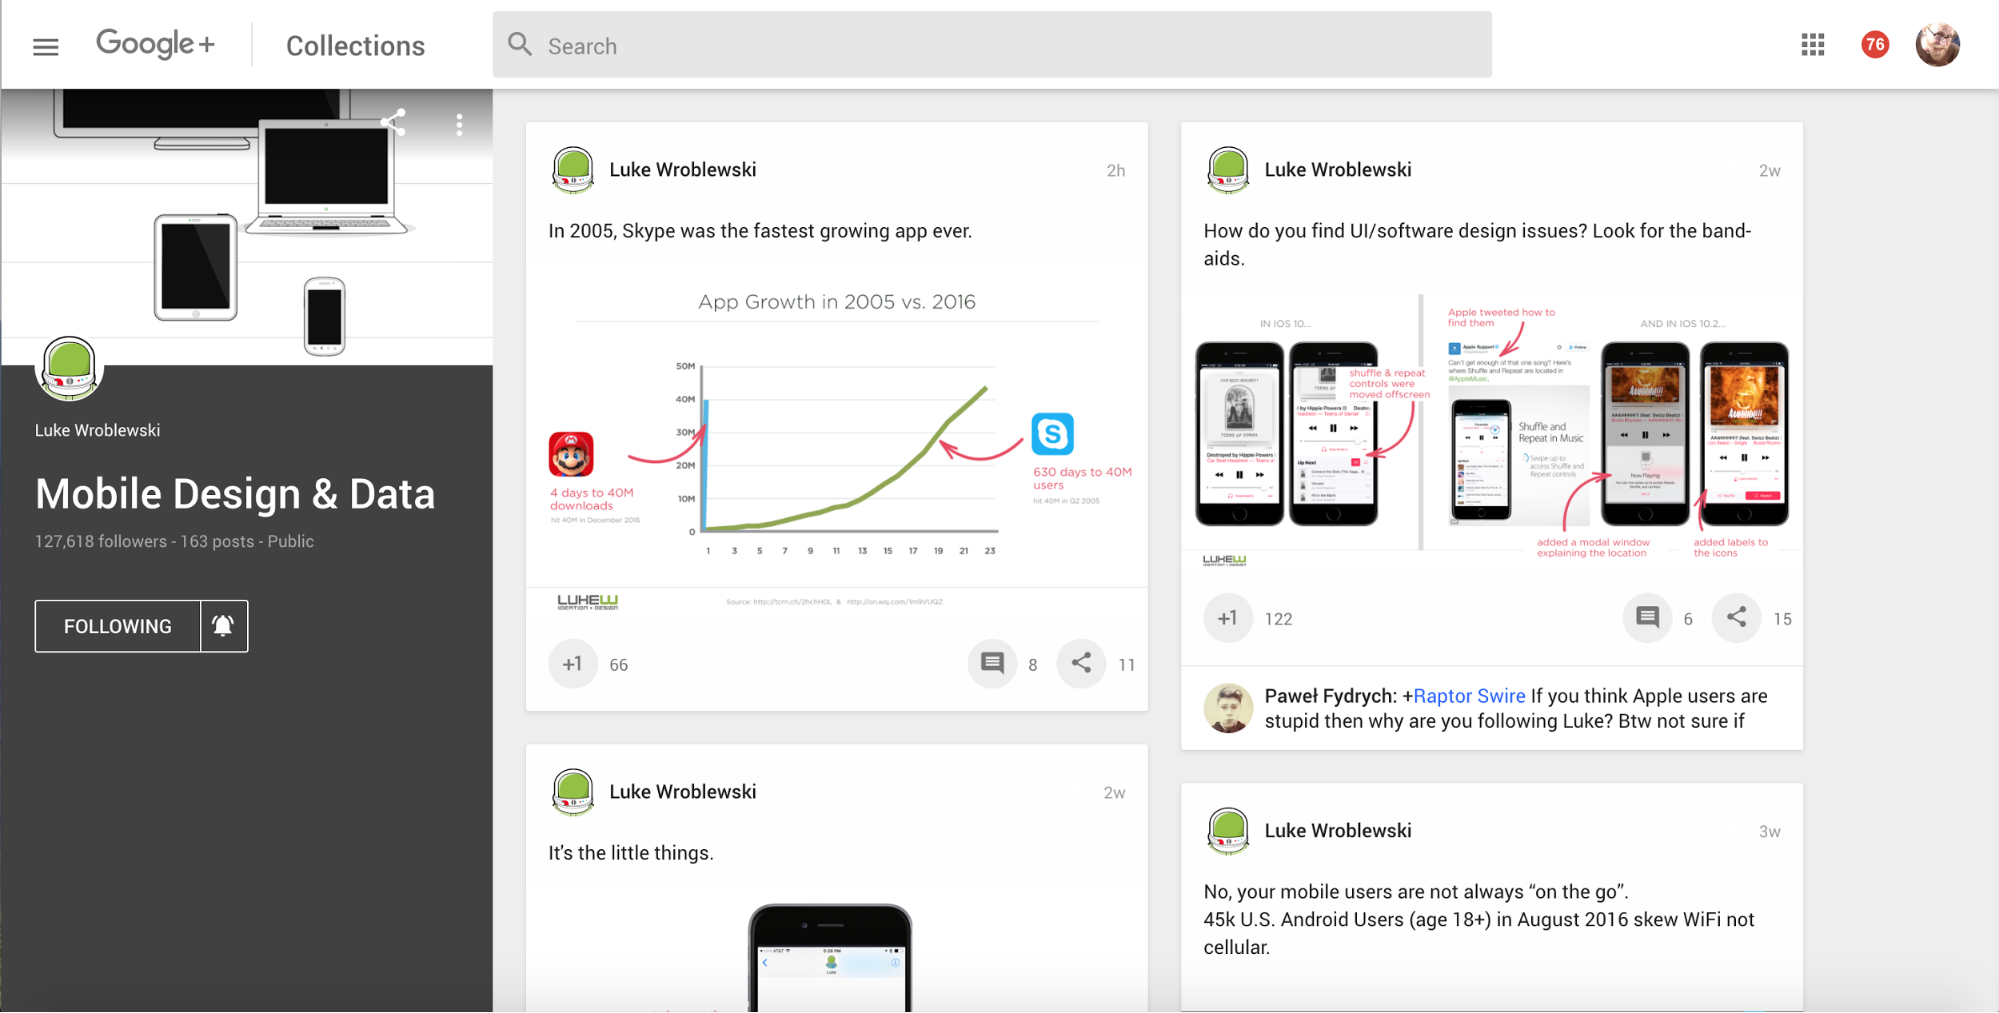 Mobile Design & Data Google+ Collection